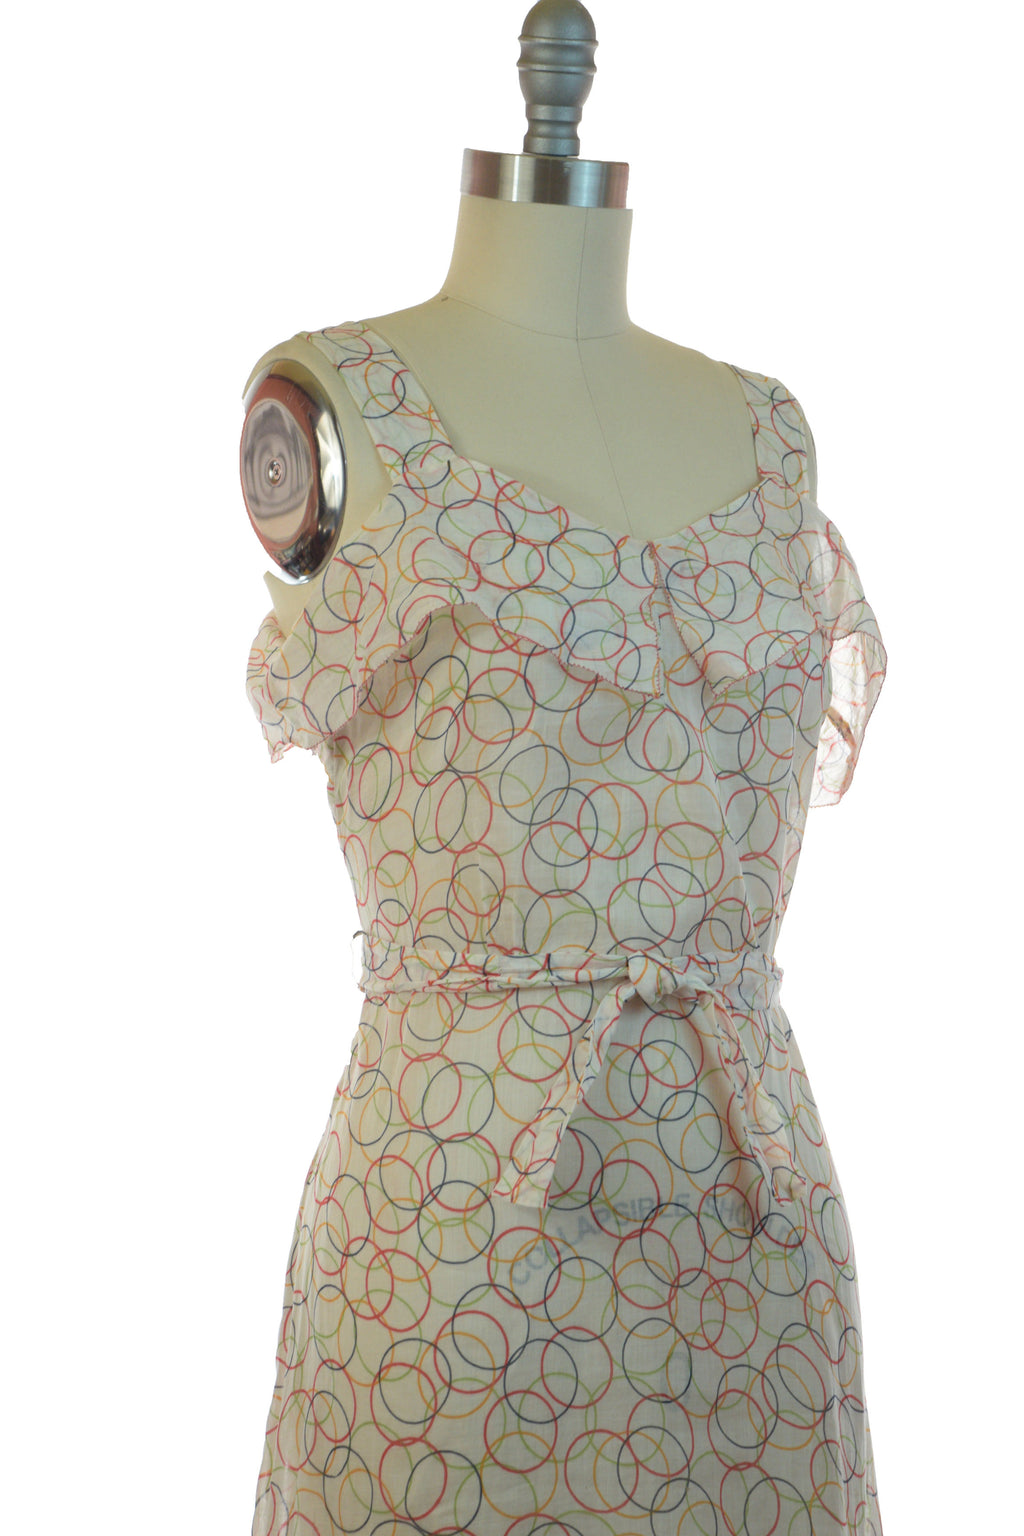 Glorious and Sheer 1930s Art Deco Summer Gown with Colorful Hoop Print